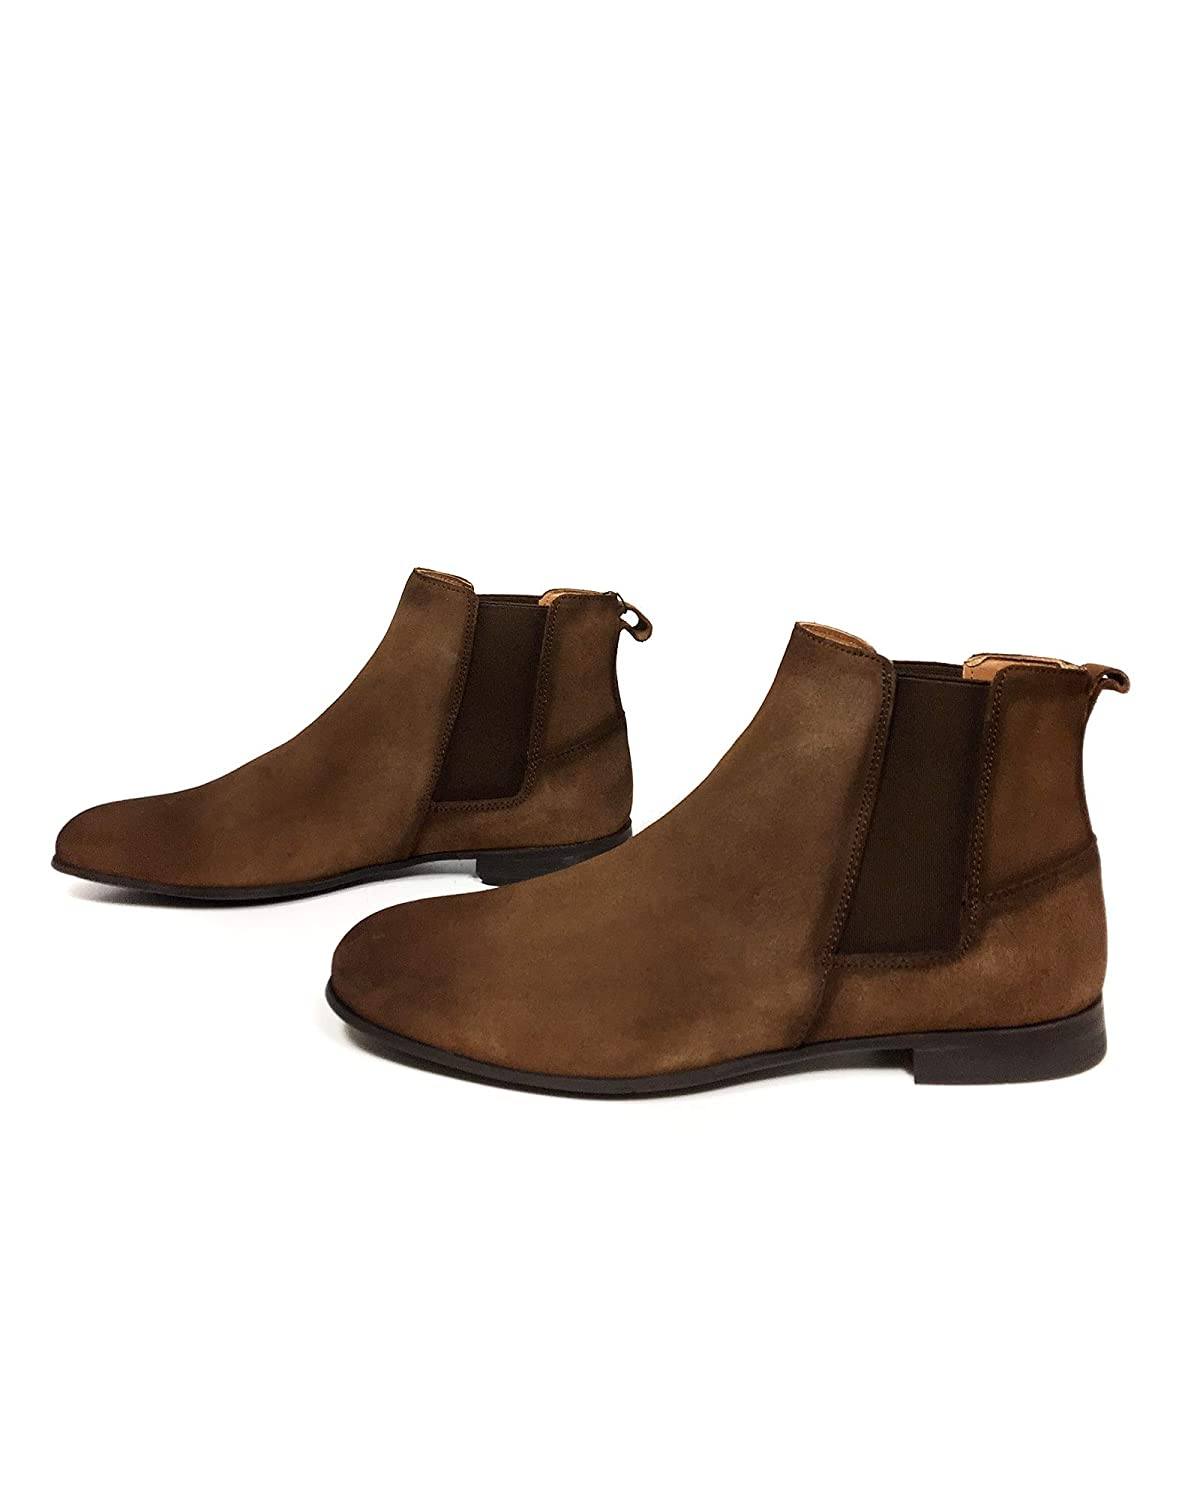 03752054 Amazon.com: Zara Men Brown leather ankle boots 5002/302: Clothing